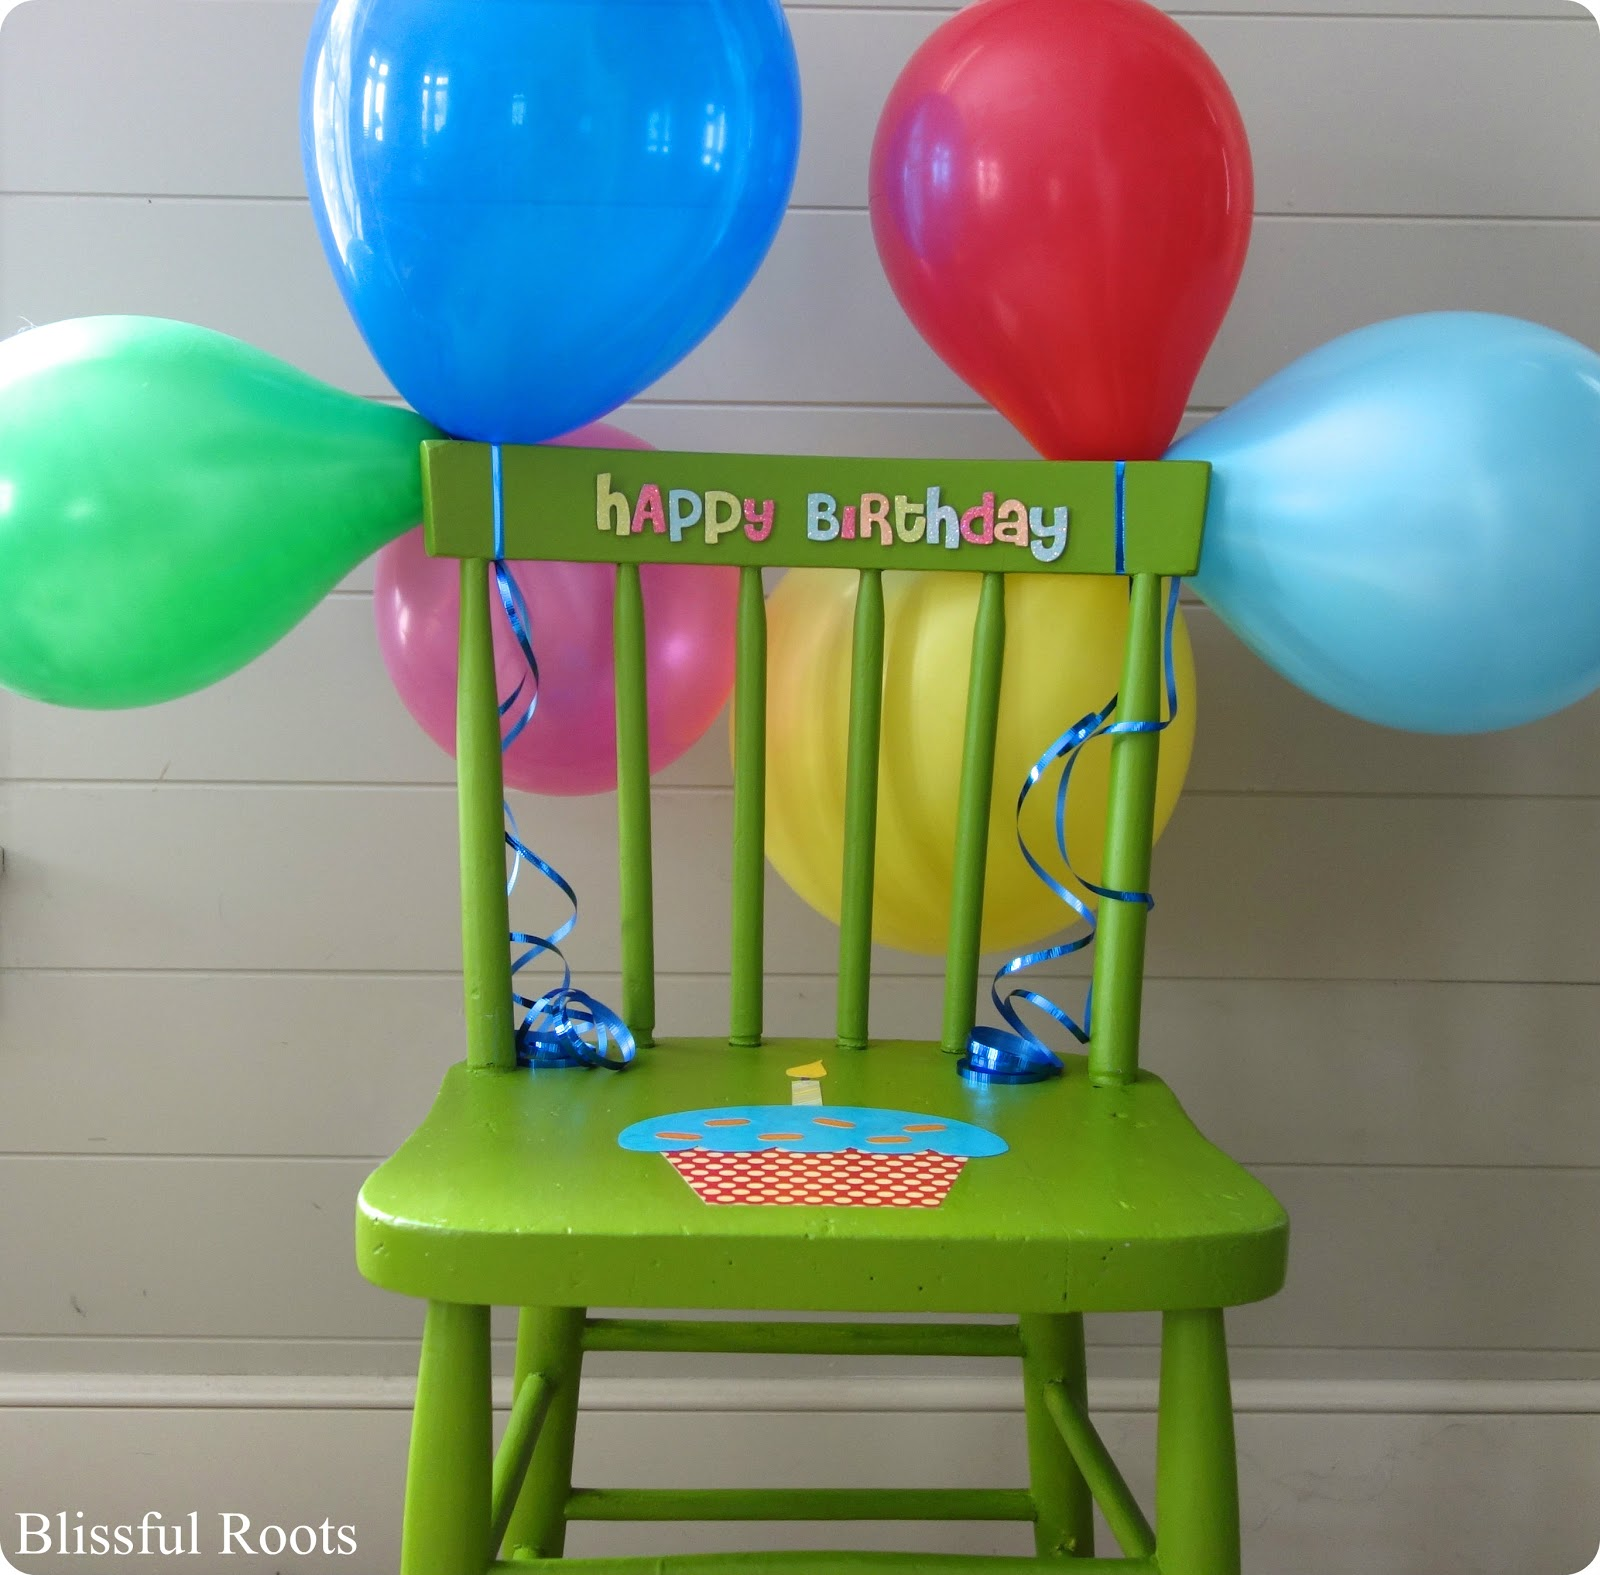 BLISSFUL ROOTS: Favorite Birthday Traditions